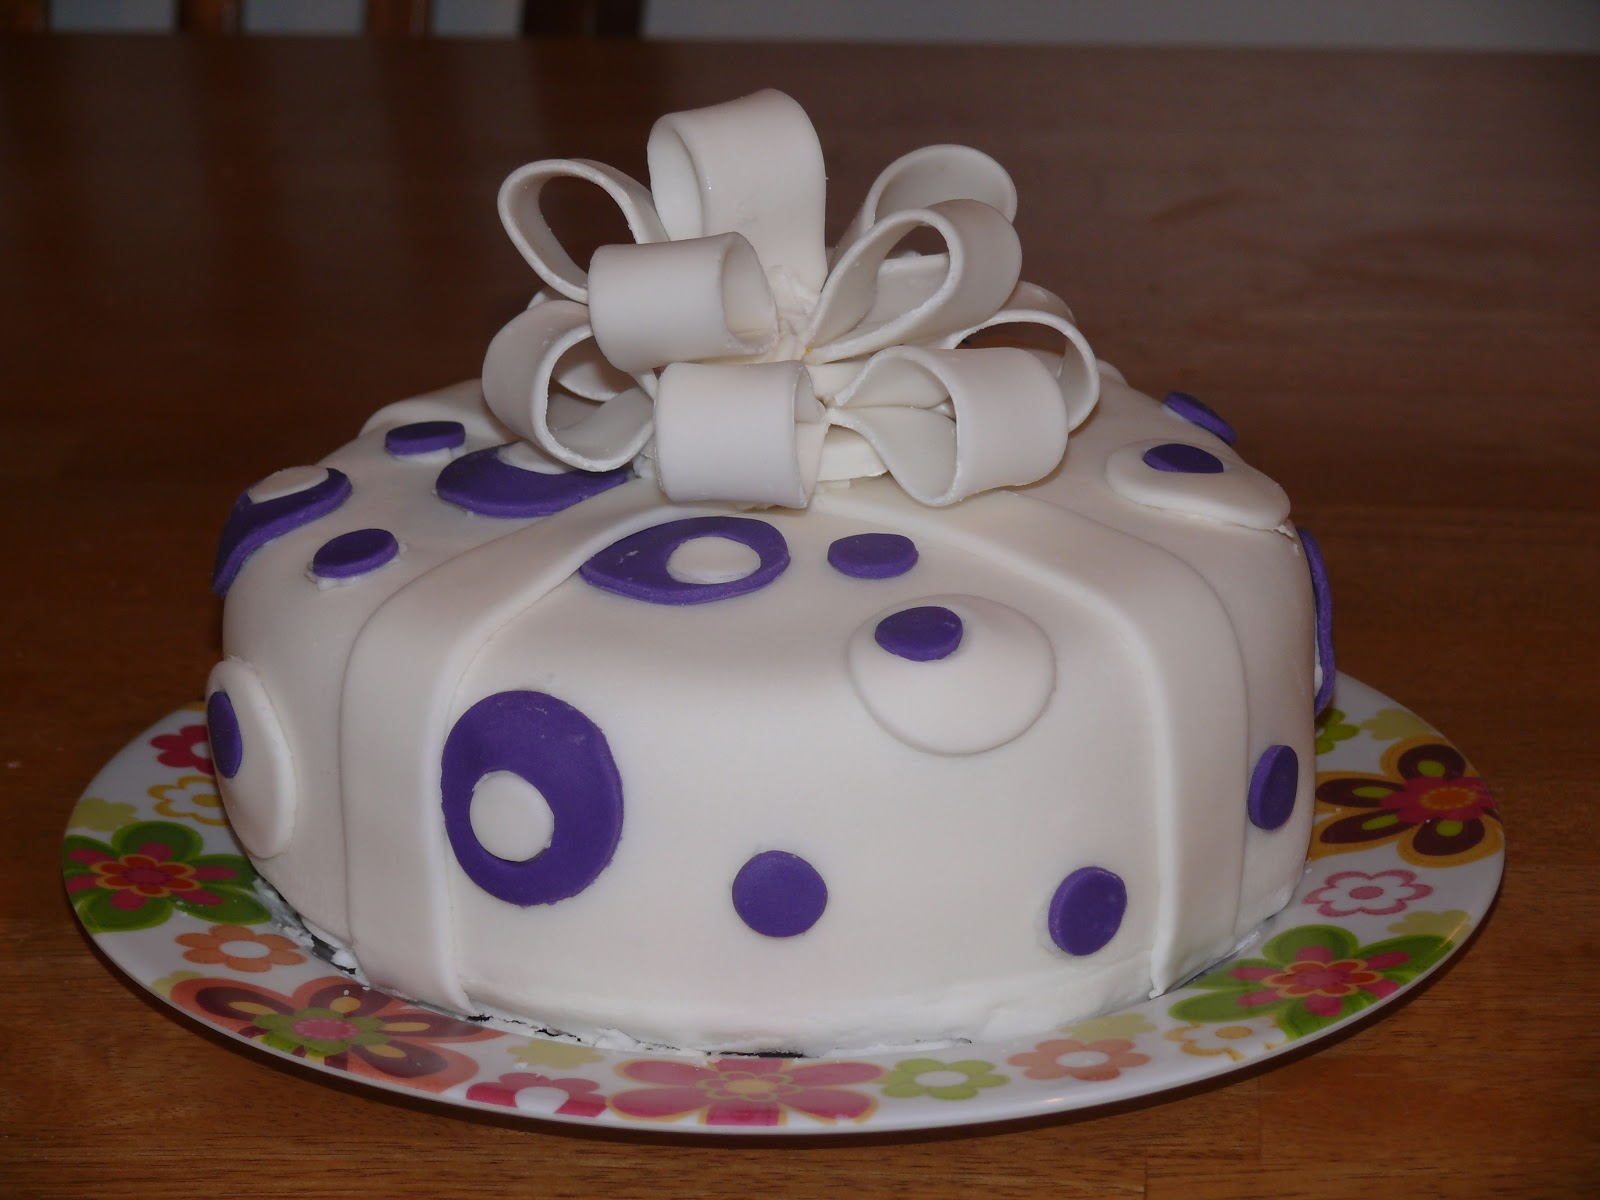 Cake Decorating : Busy Mama: GET OUT: WILTON CAKE DECORATING COURSE 3